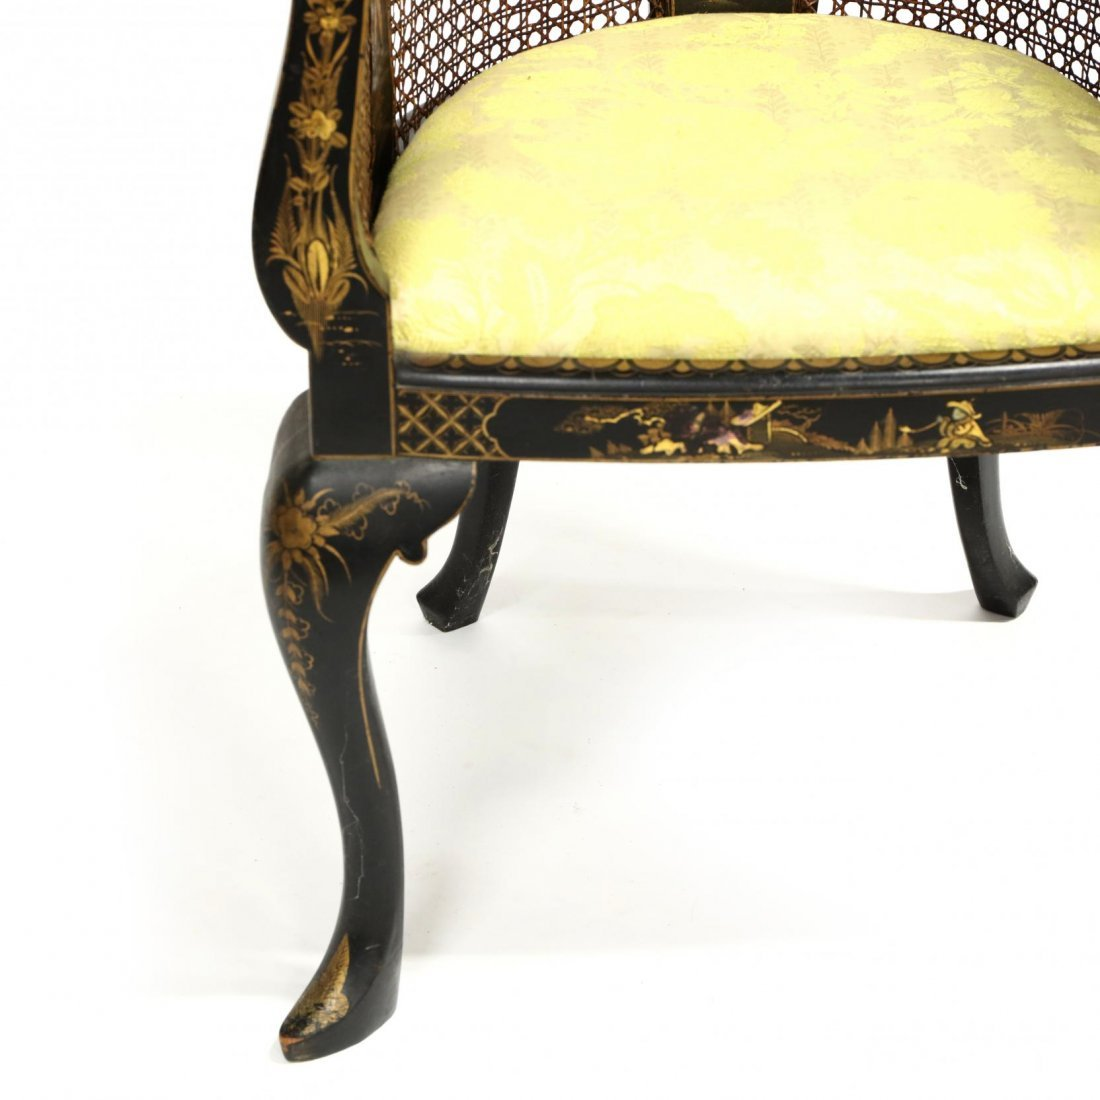 Vintage Chinoiserie Barrel Back Arm Chair - 2